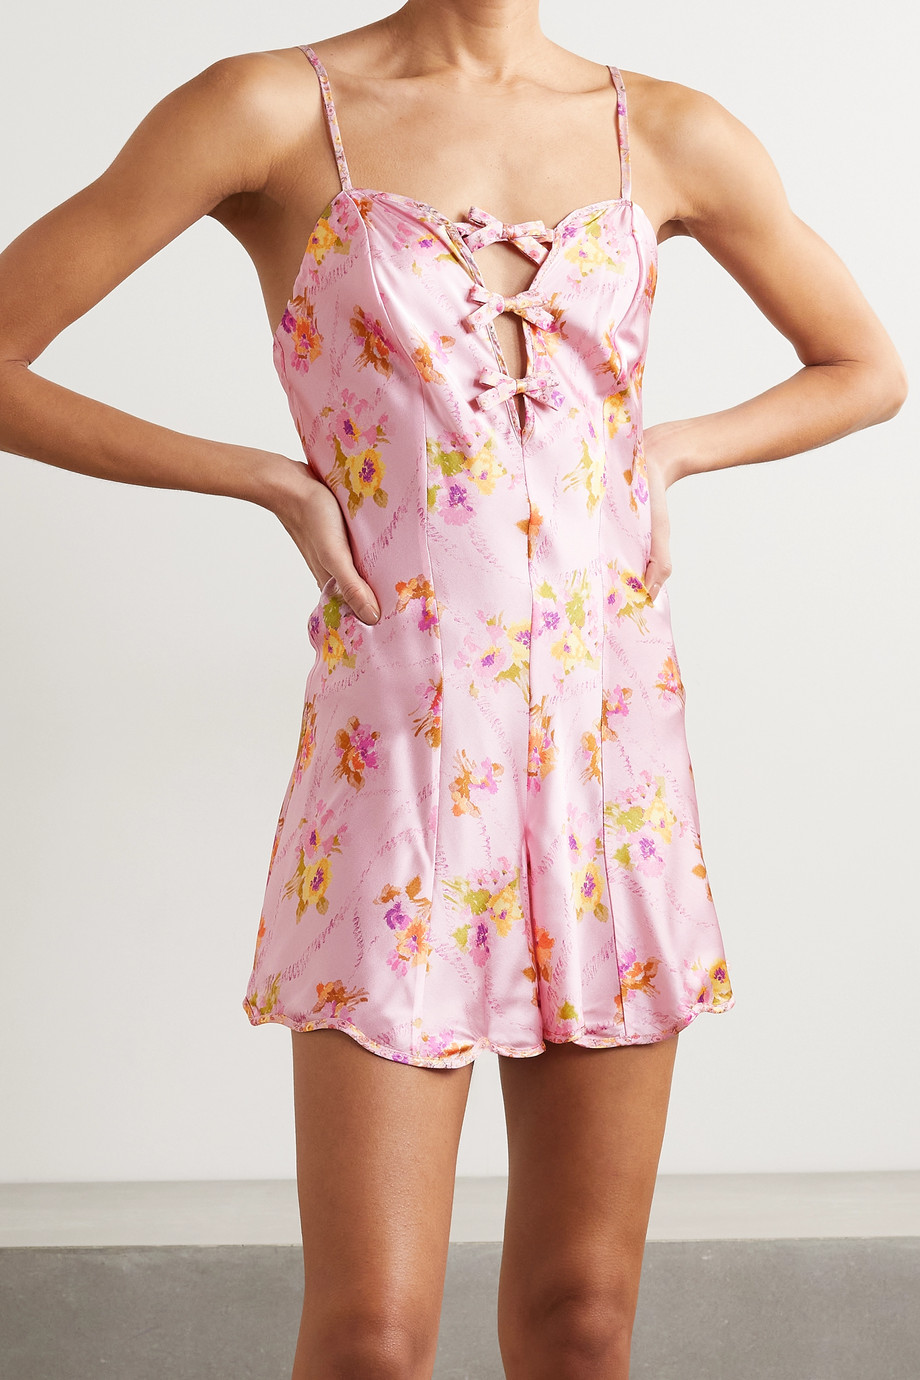 Morgan Lane + LoveShackFancy Tilly Playsuit aus Satin aus einer Seidenmischung mit Cut-outs